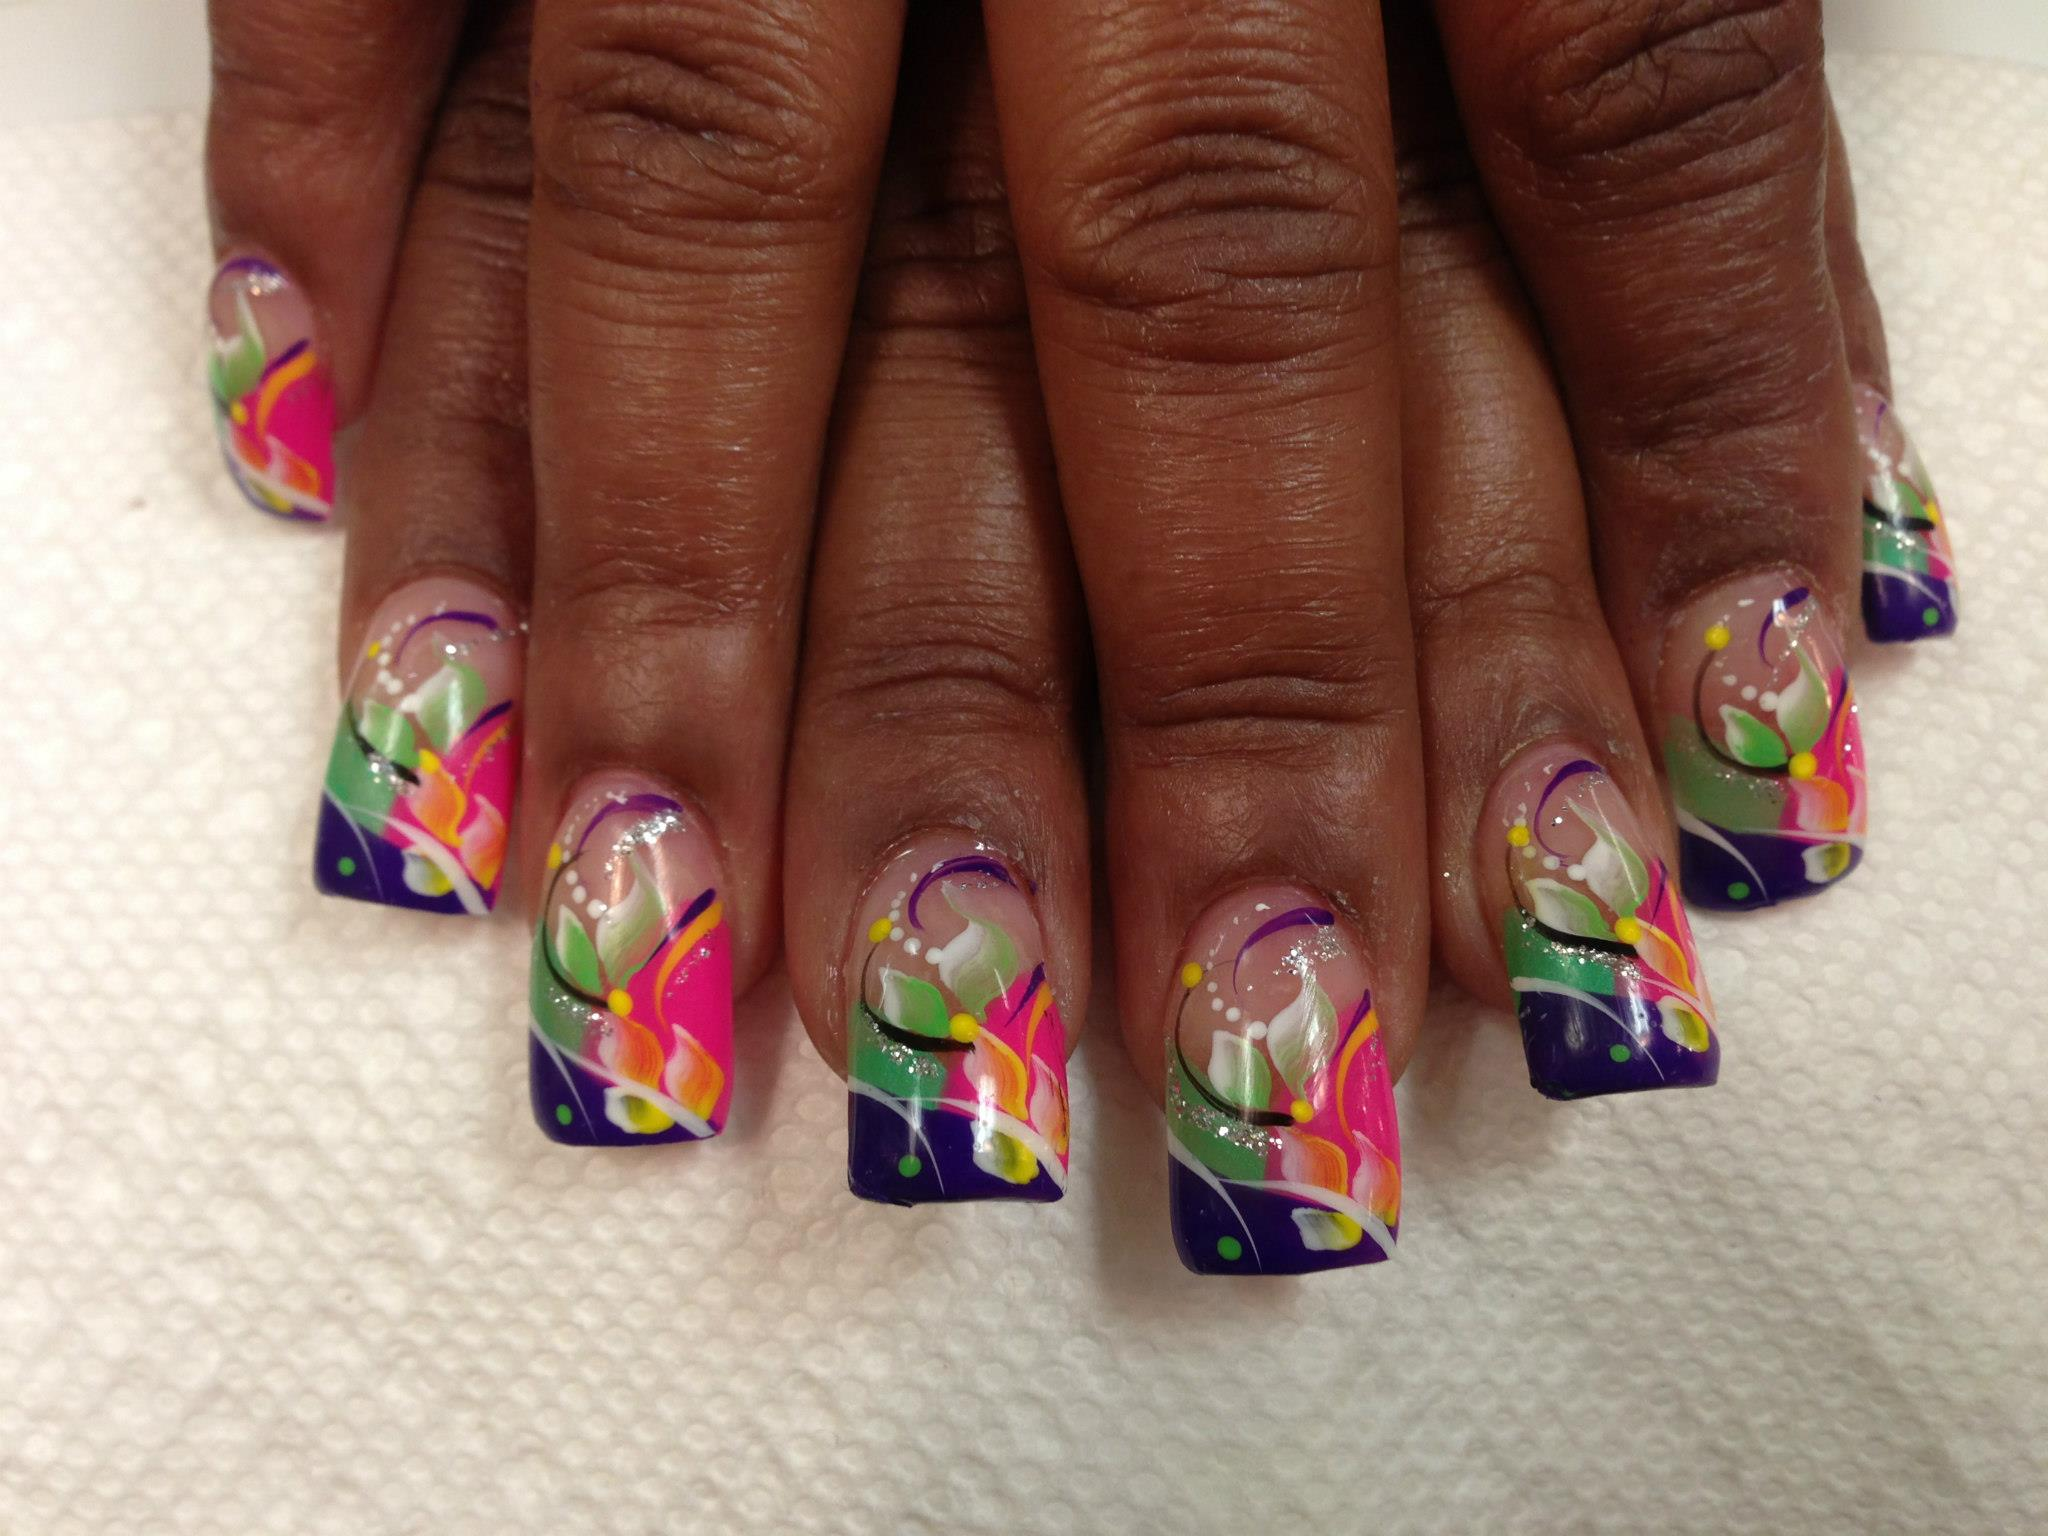 Flower Shop Mix, nail art designs by Top Nails, Clarksville TN ...